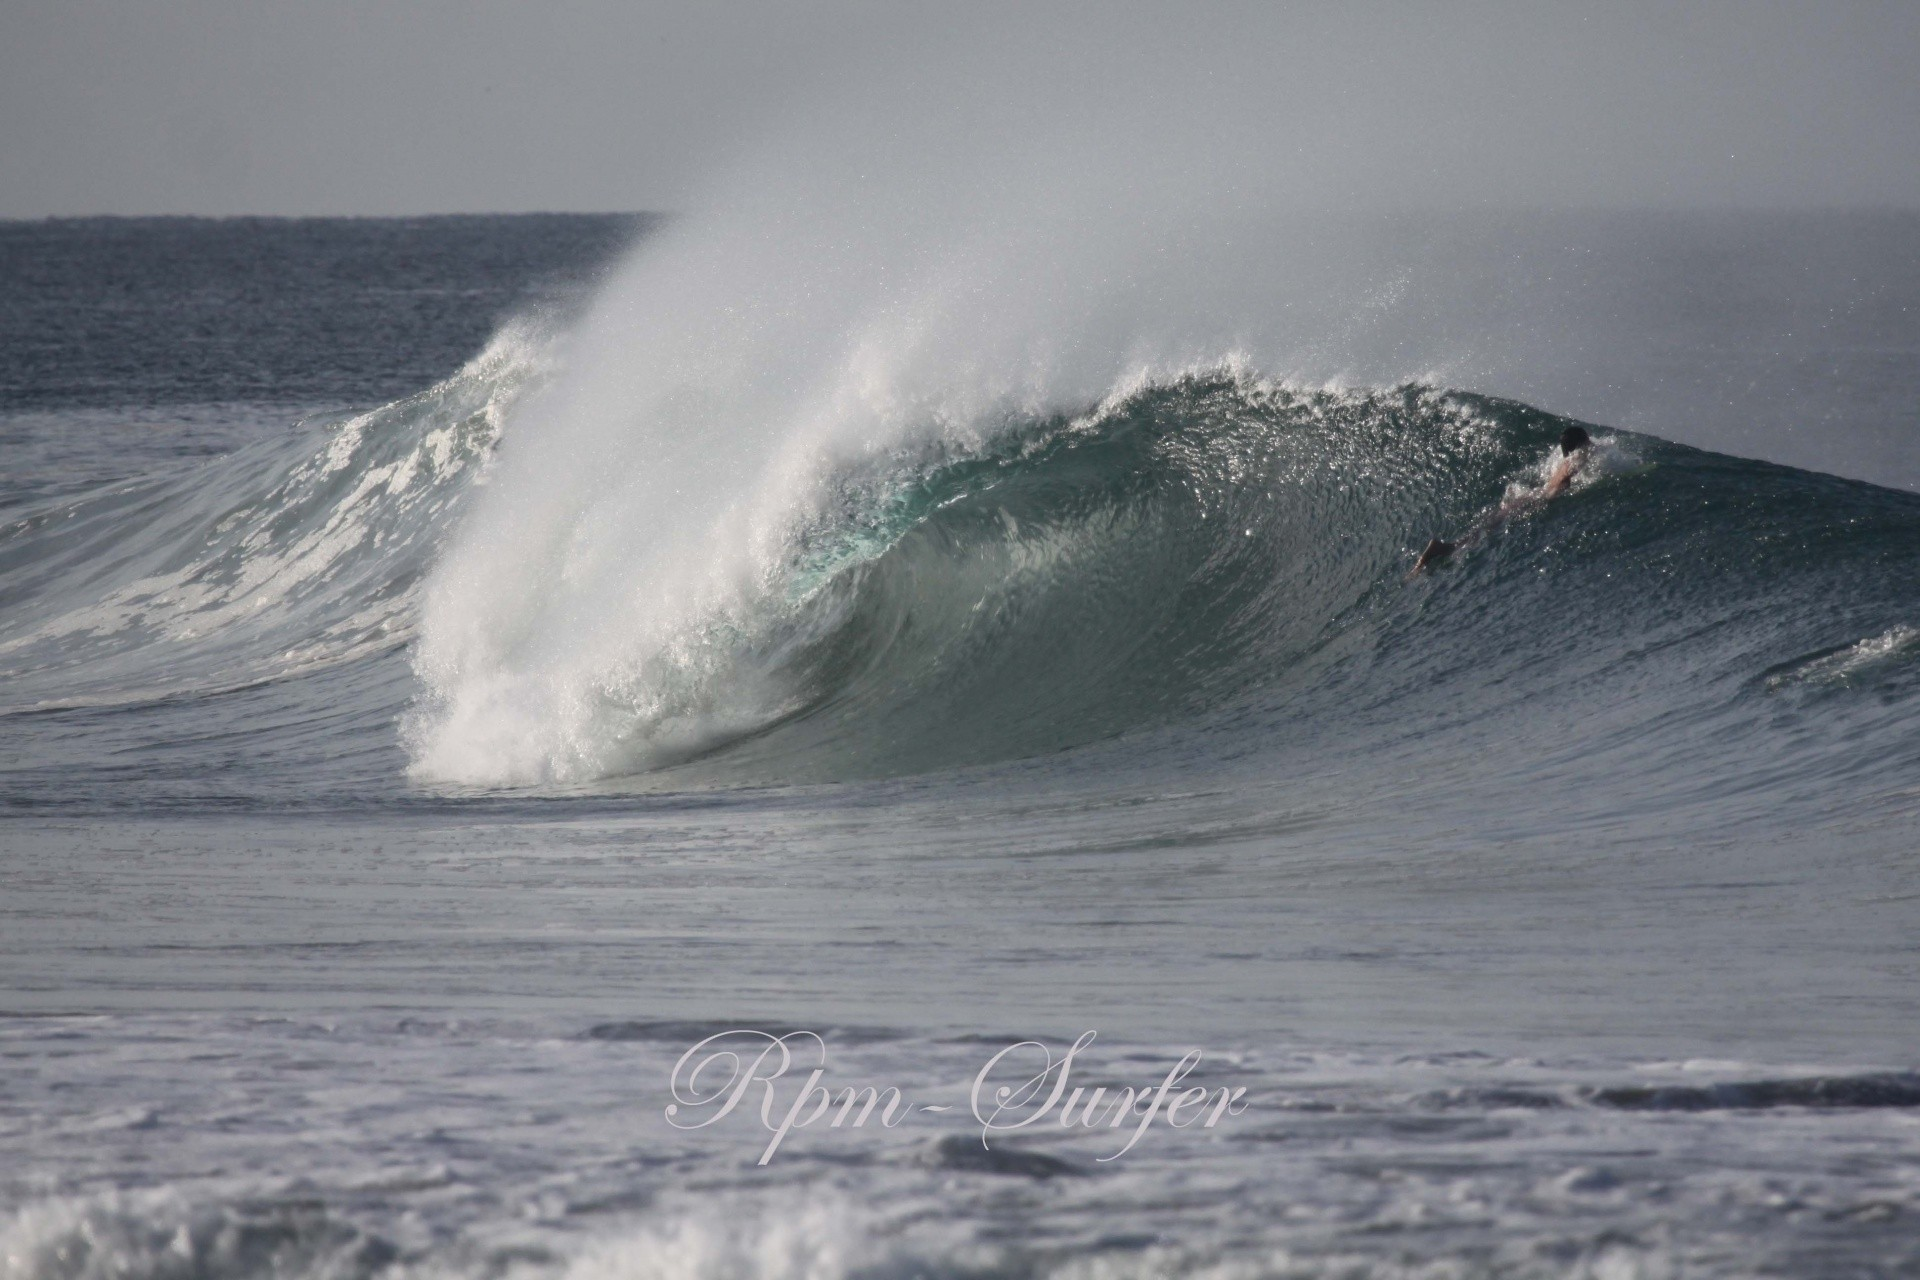 Rpmsurfer Lonnie Caruthers's photo of Puerto Escondido